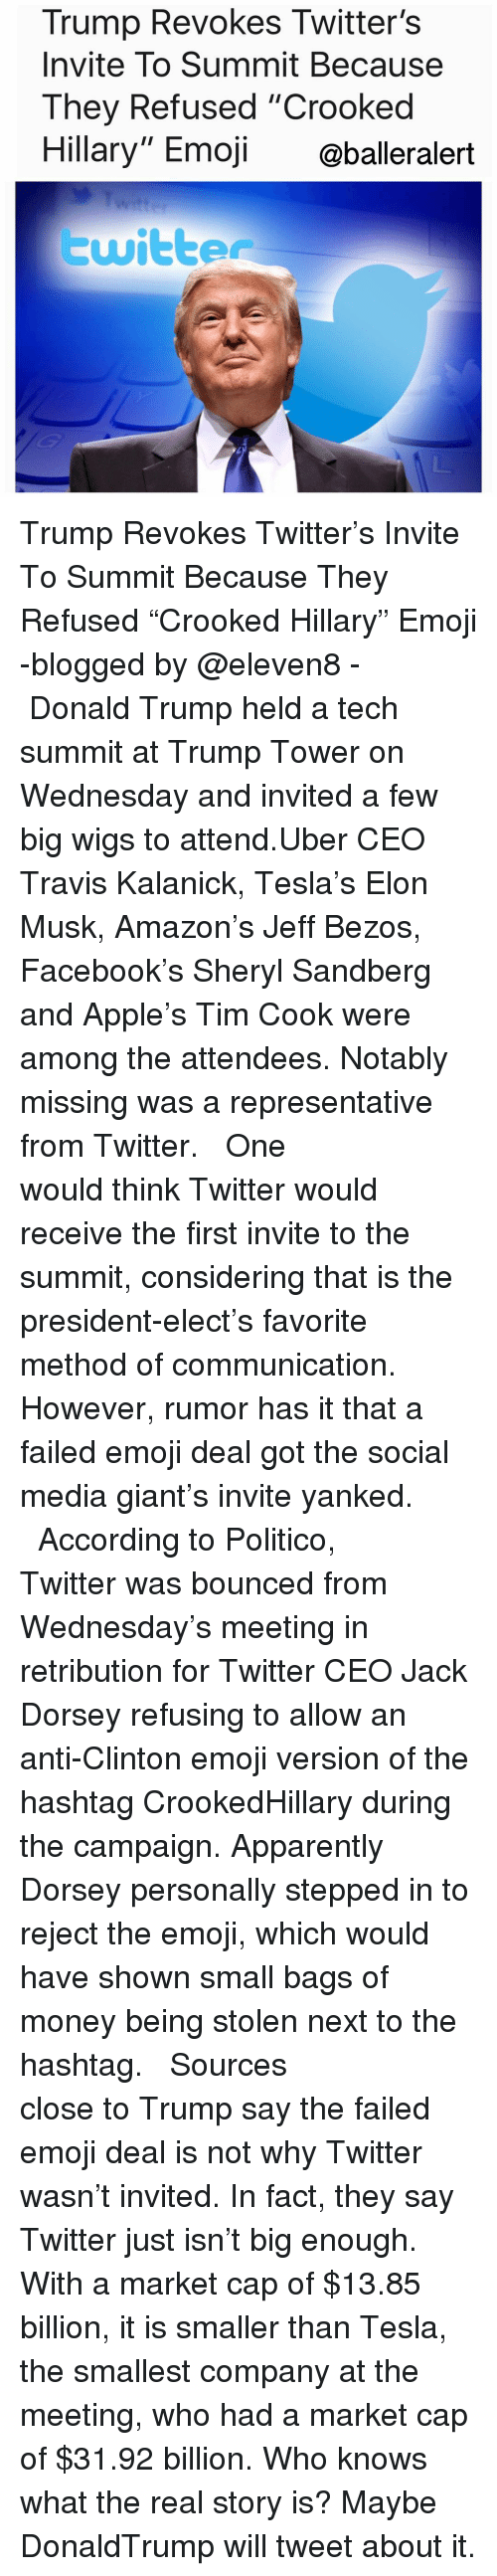 Thrilled by the response apple ceo tim cook said in a tweet that it - Amazon Apparently And Donald Trump Trump Revokes Twitter S Invite To Summit Because They